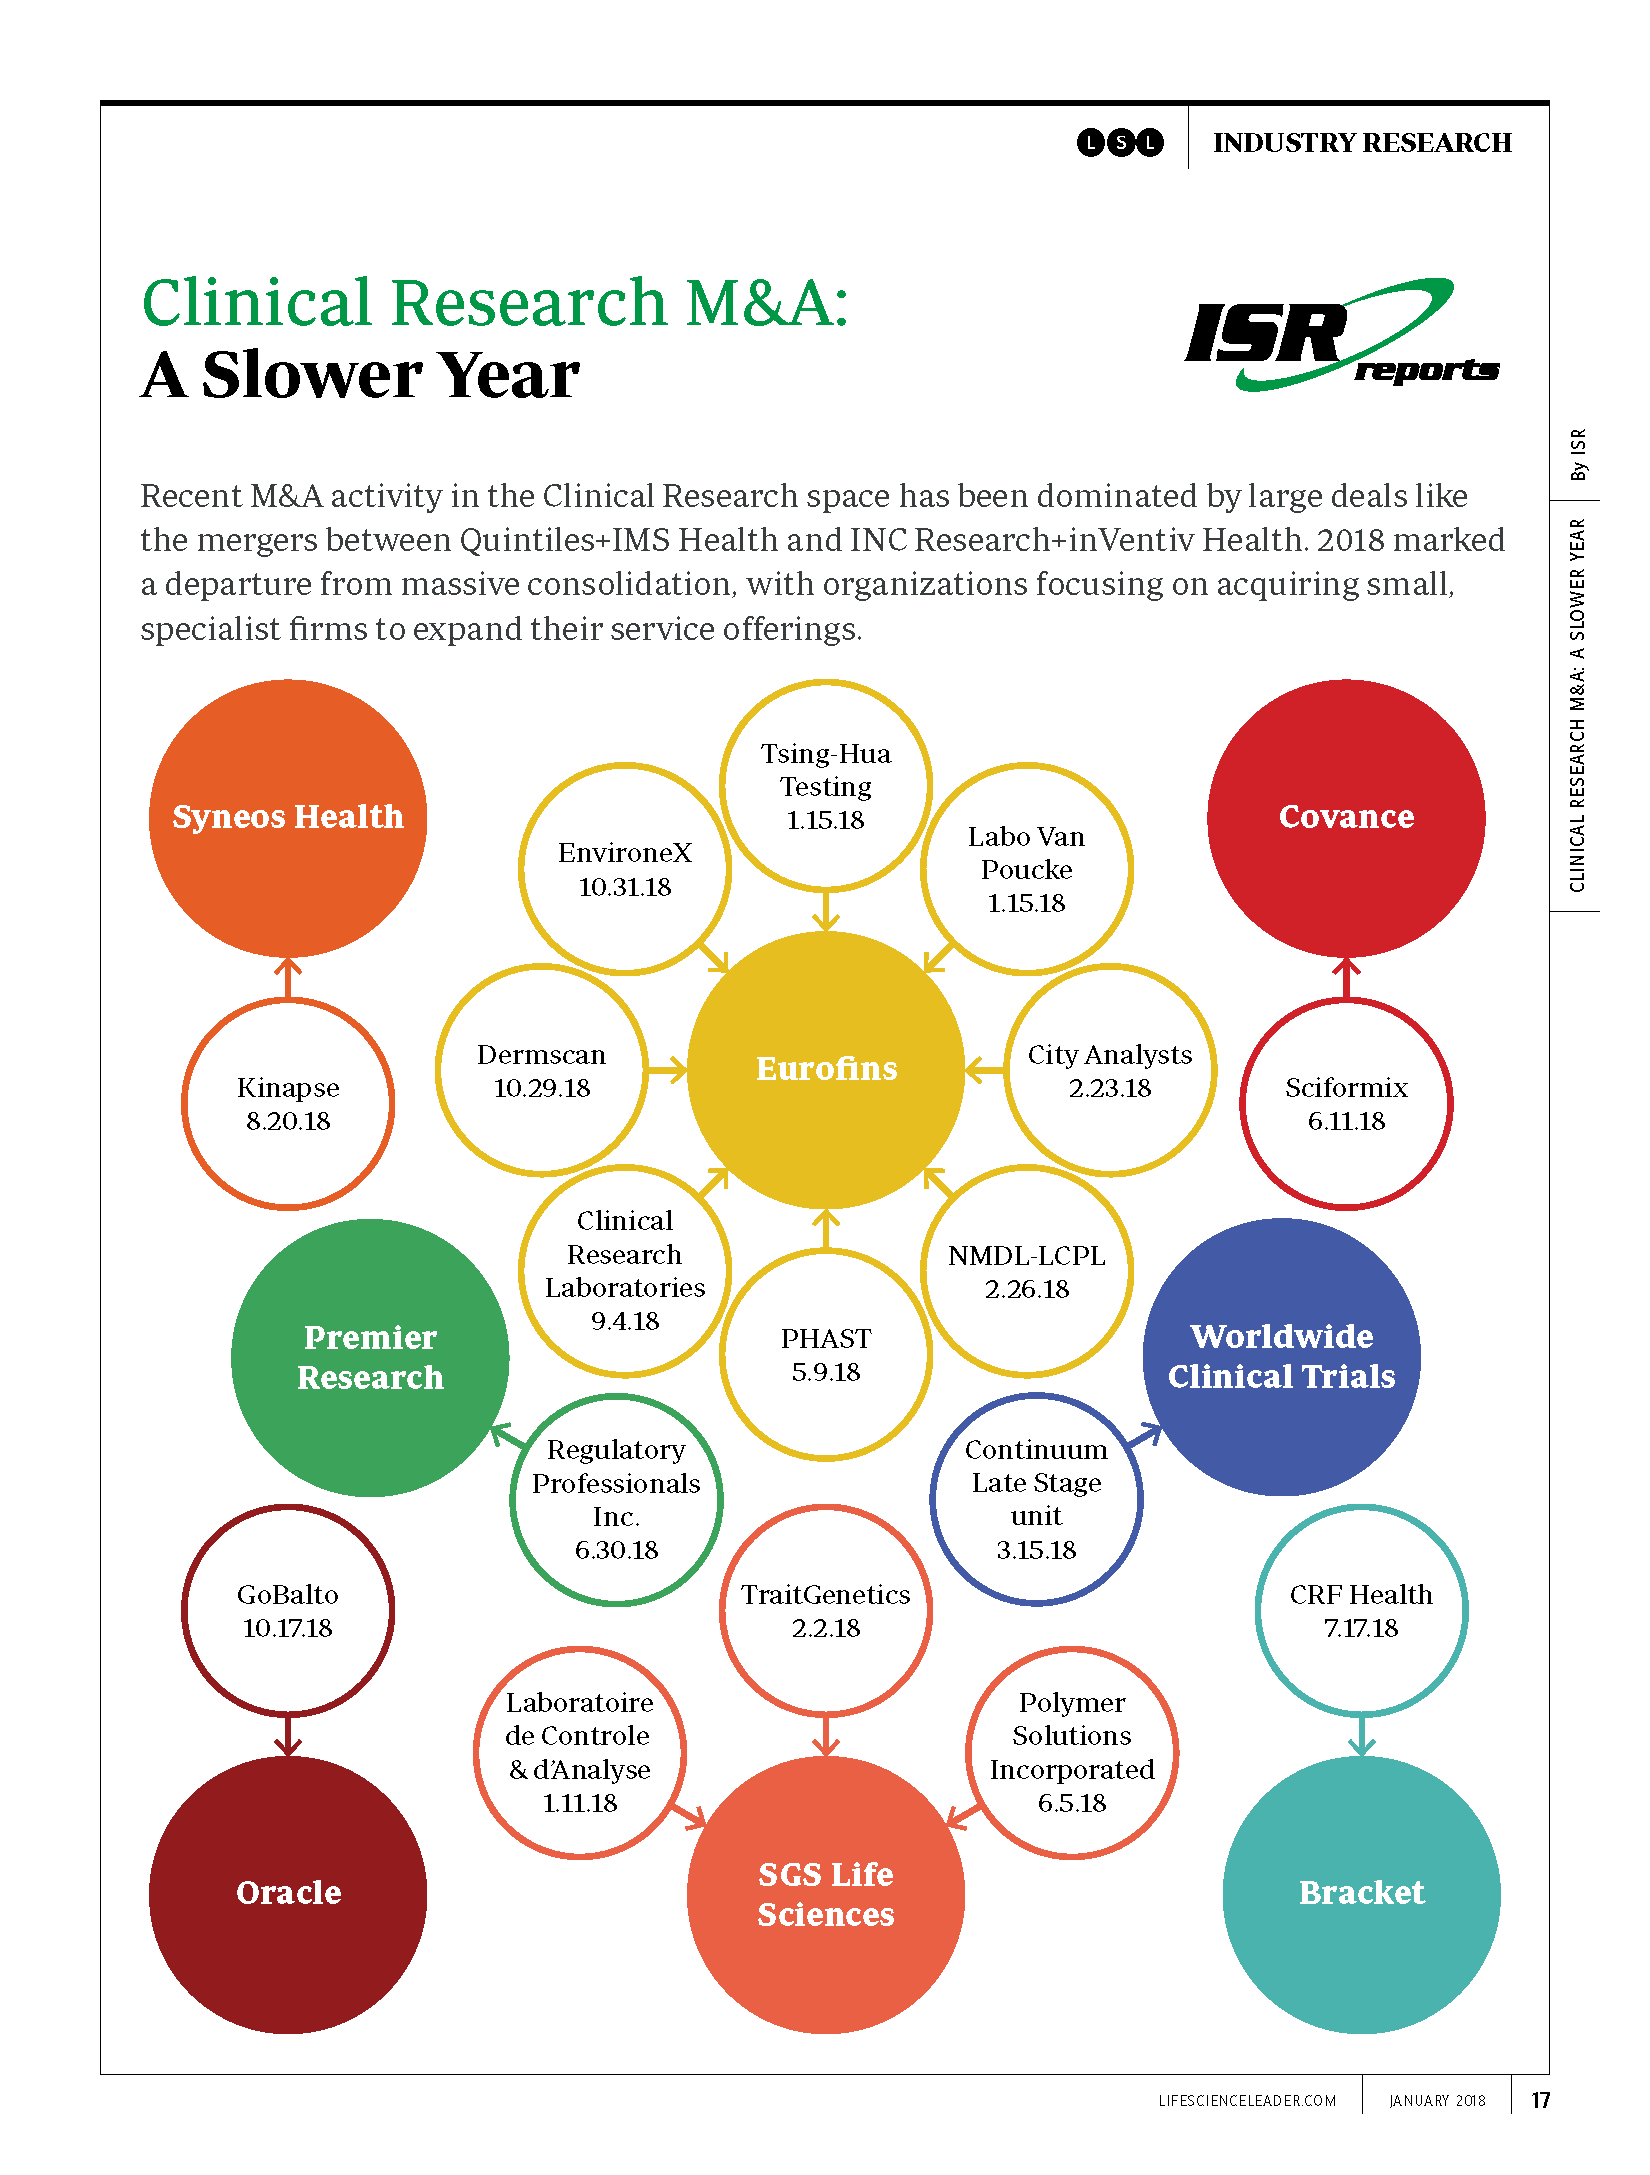 Clinical Research M&A